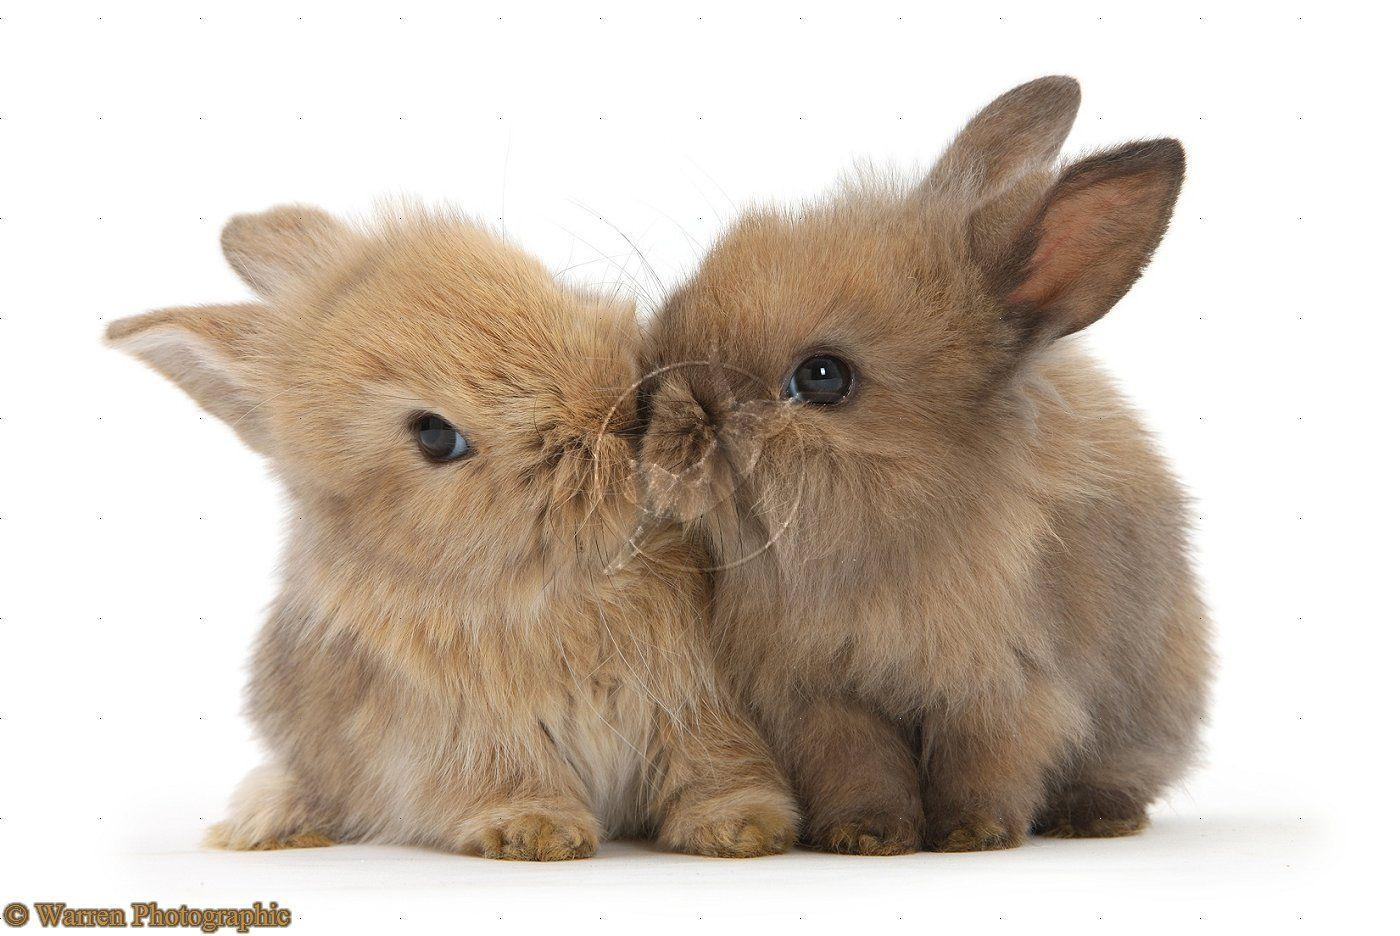 Wallpapers For Cute Baby Bunny Wallpapers Good Night